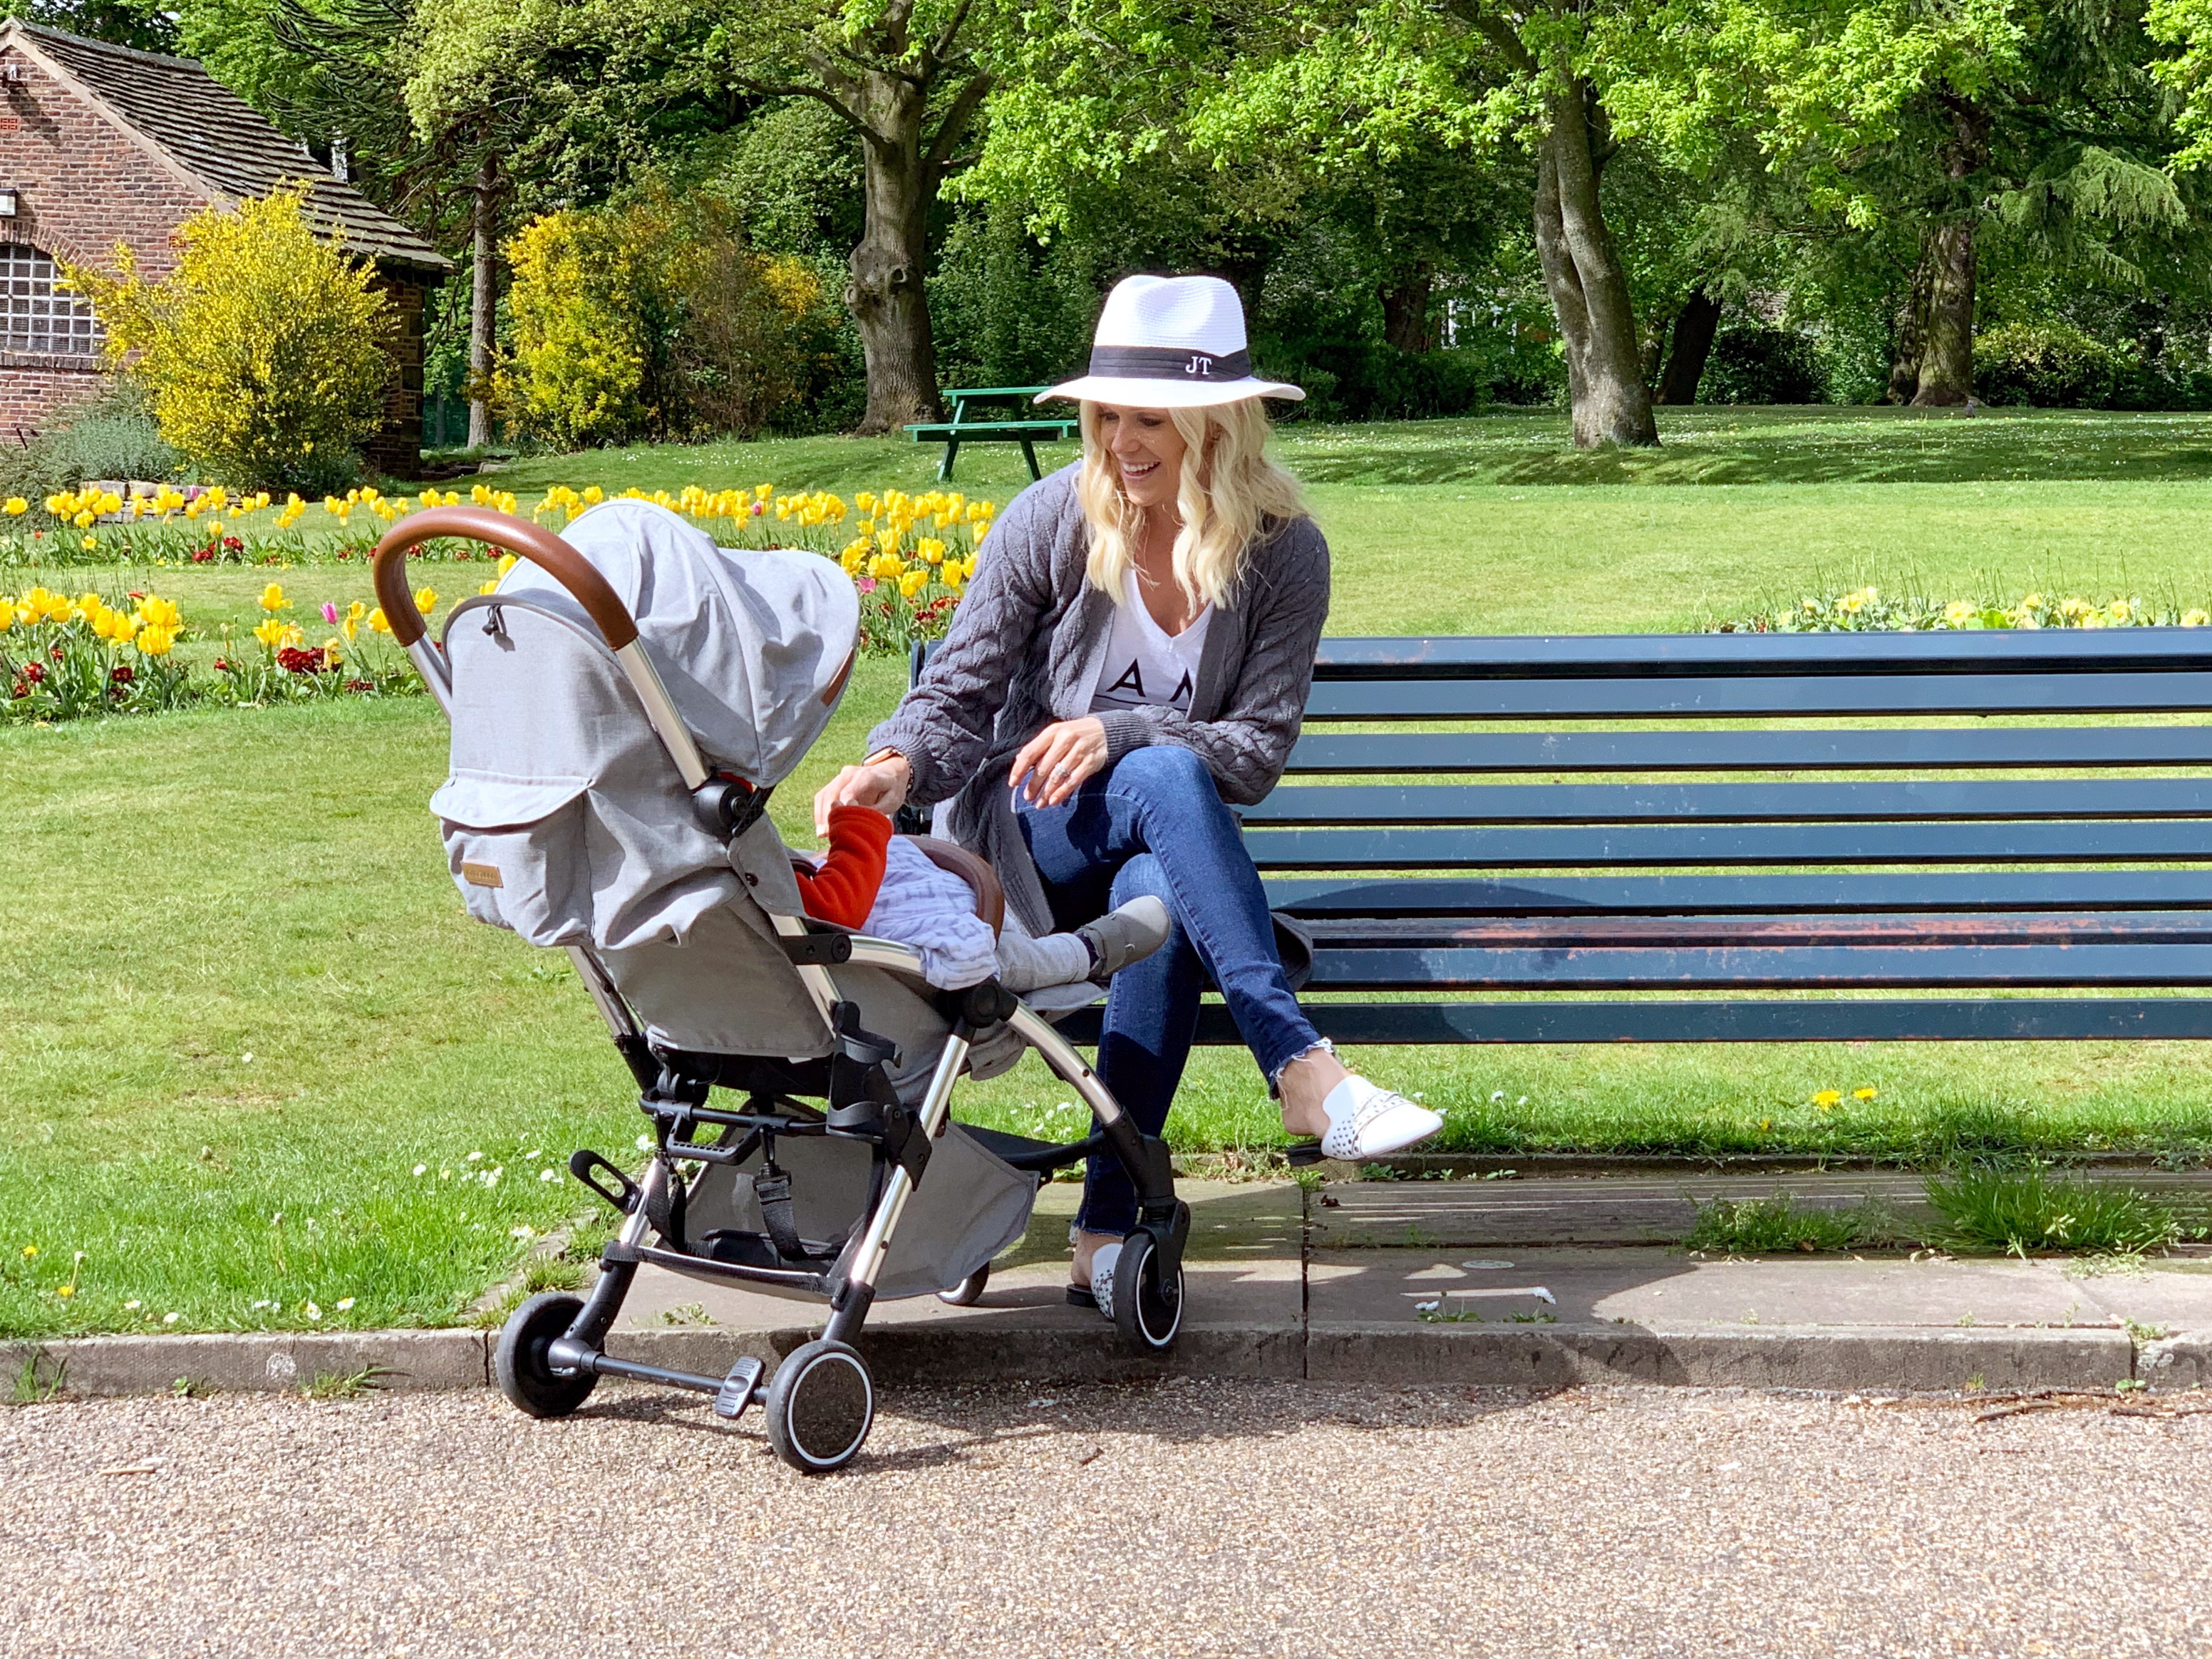 A woman sat on a park bench speaking to her child which is sat in a grey compact stroller.